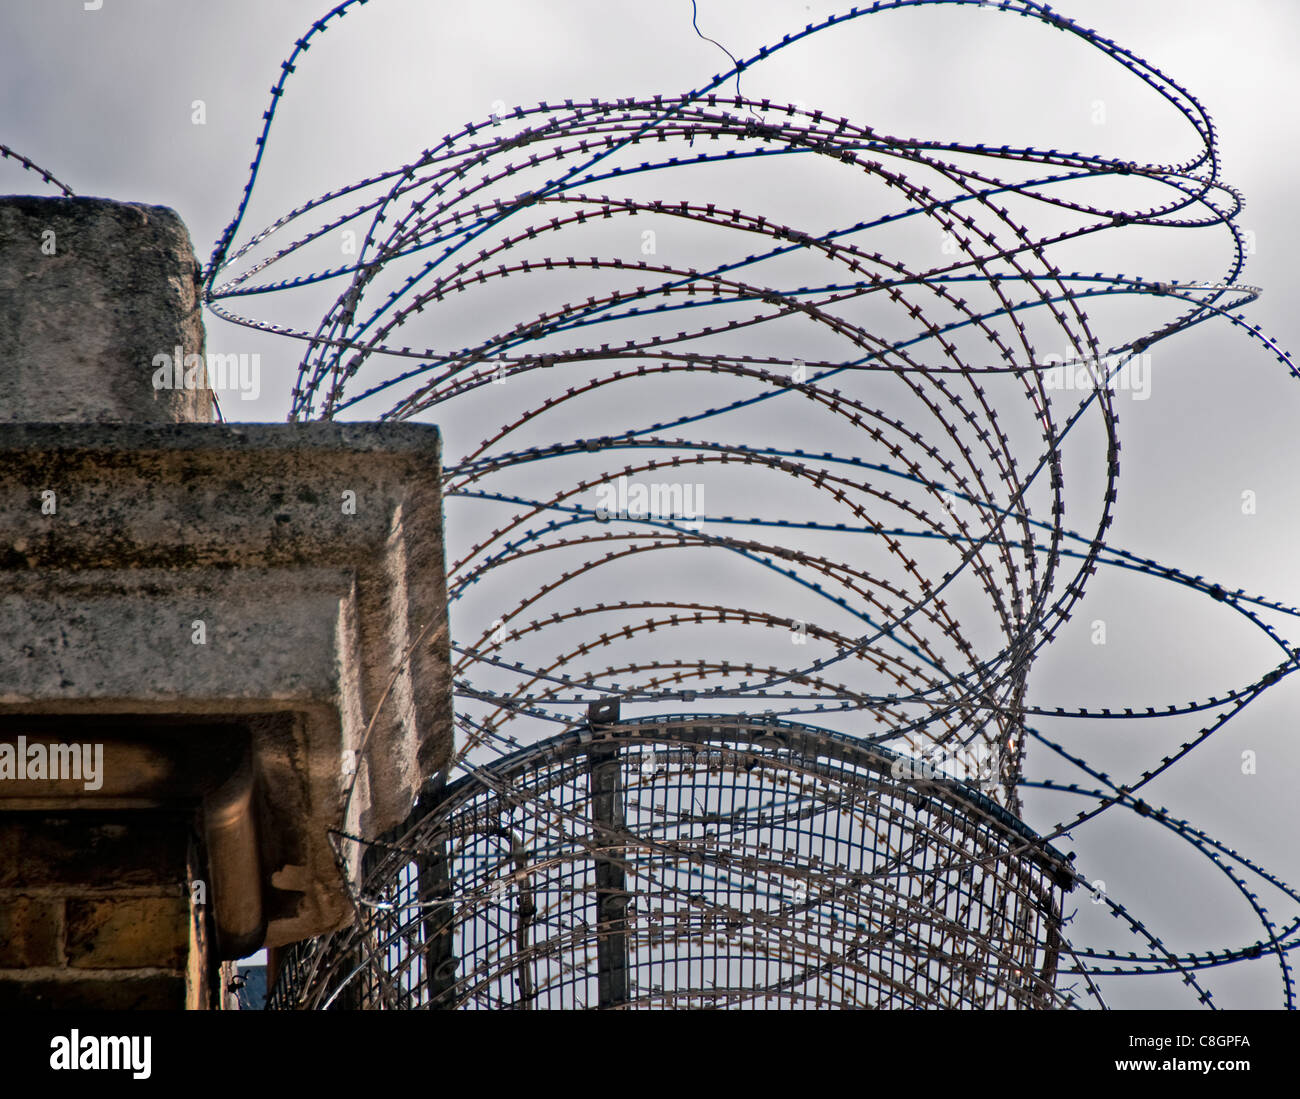 Razor Wire Security Fencing In Stock Photos & Razor Wire Security ...